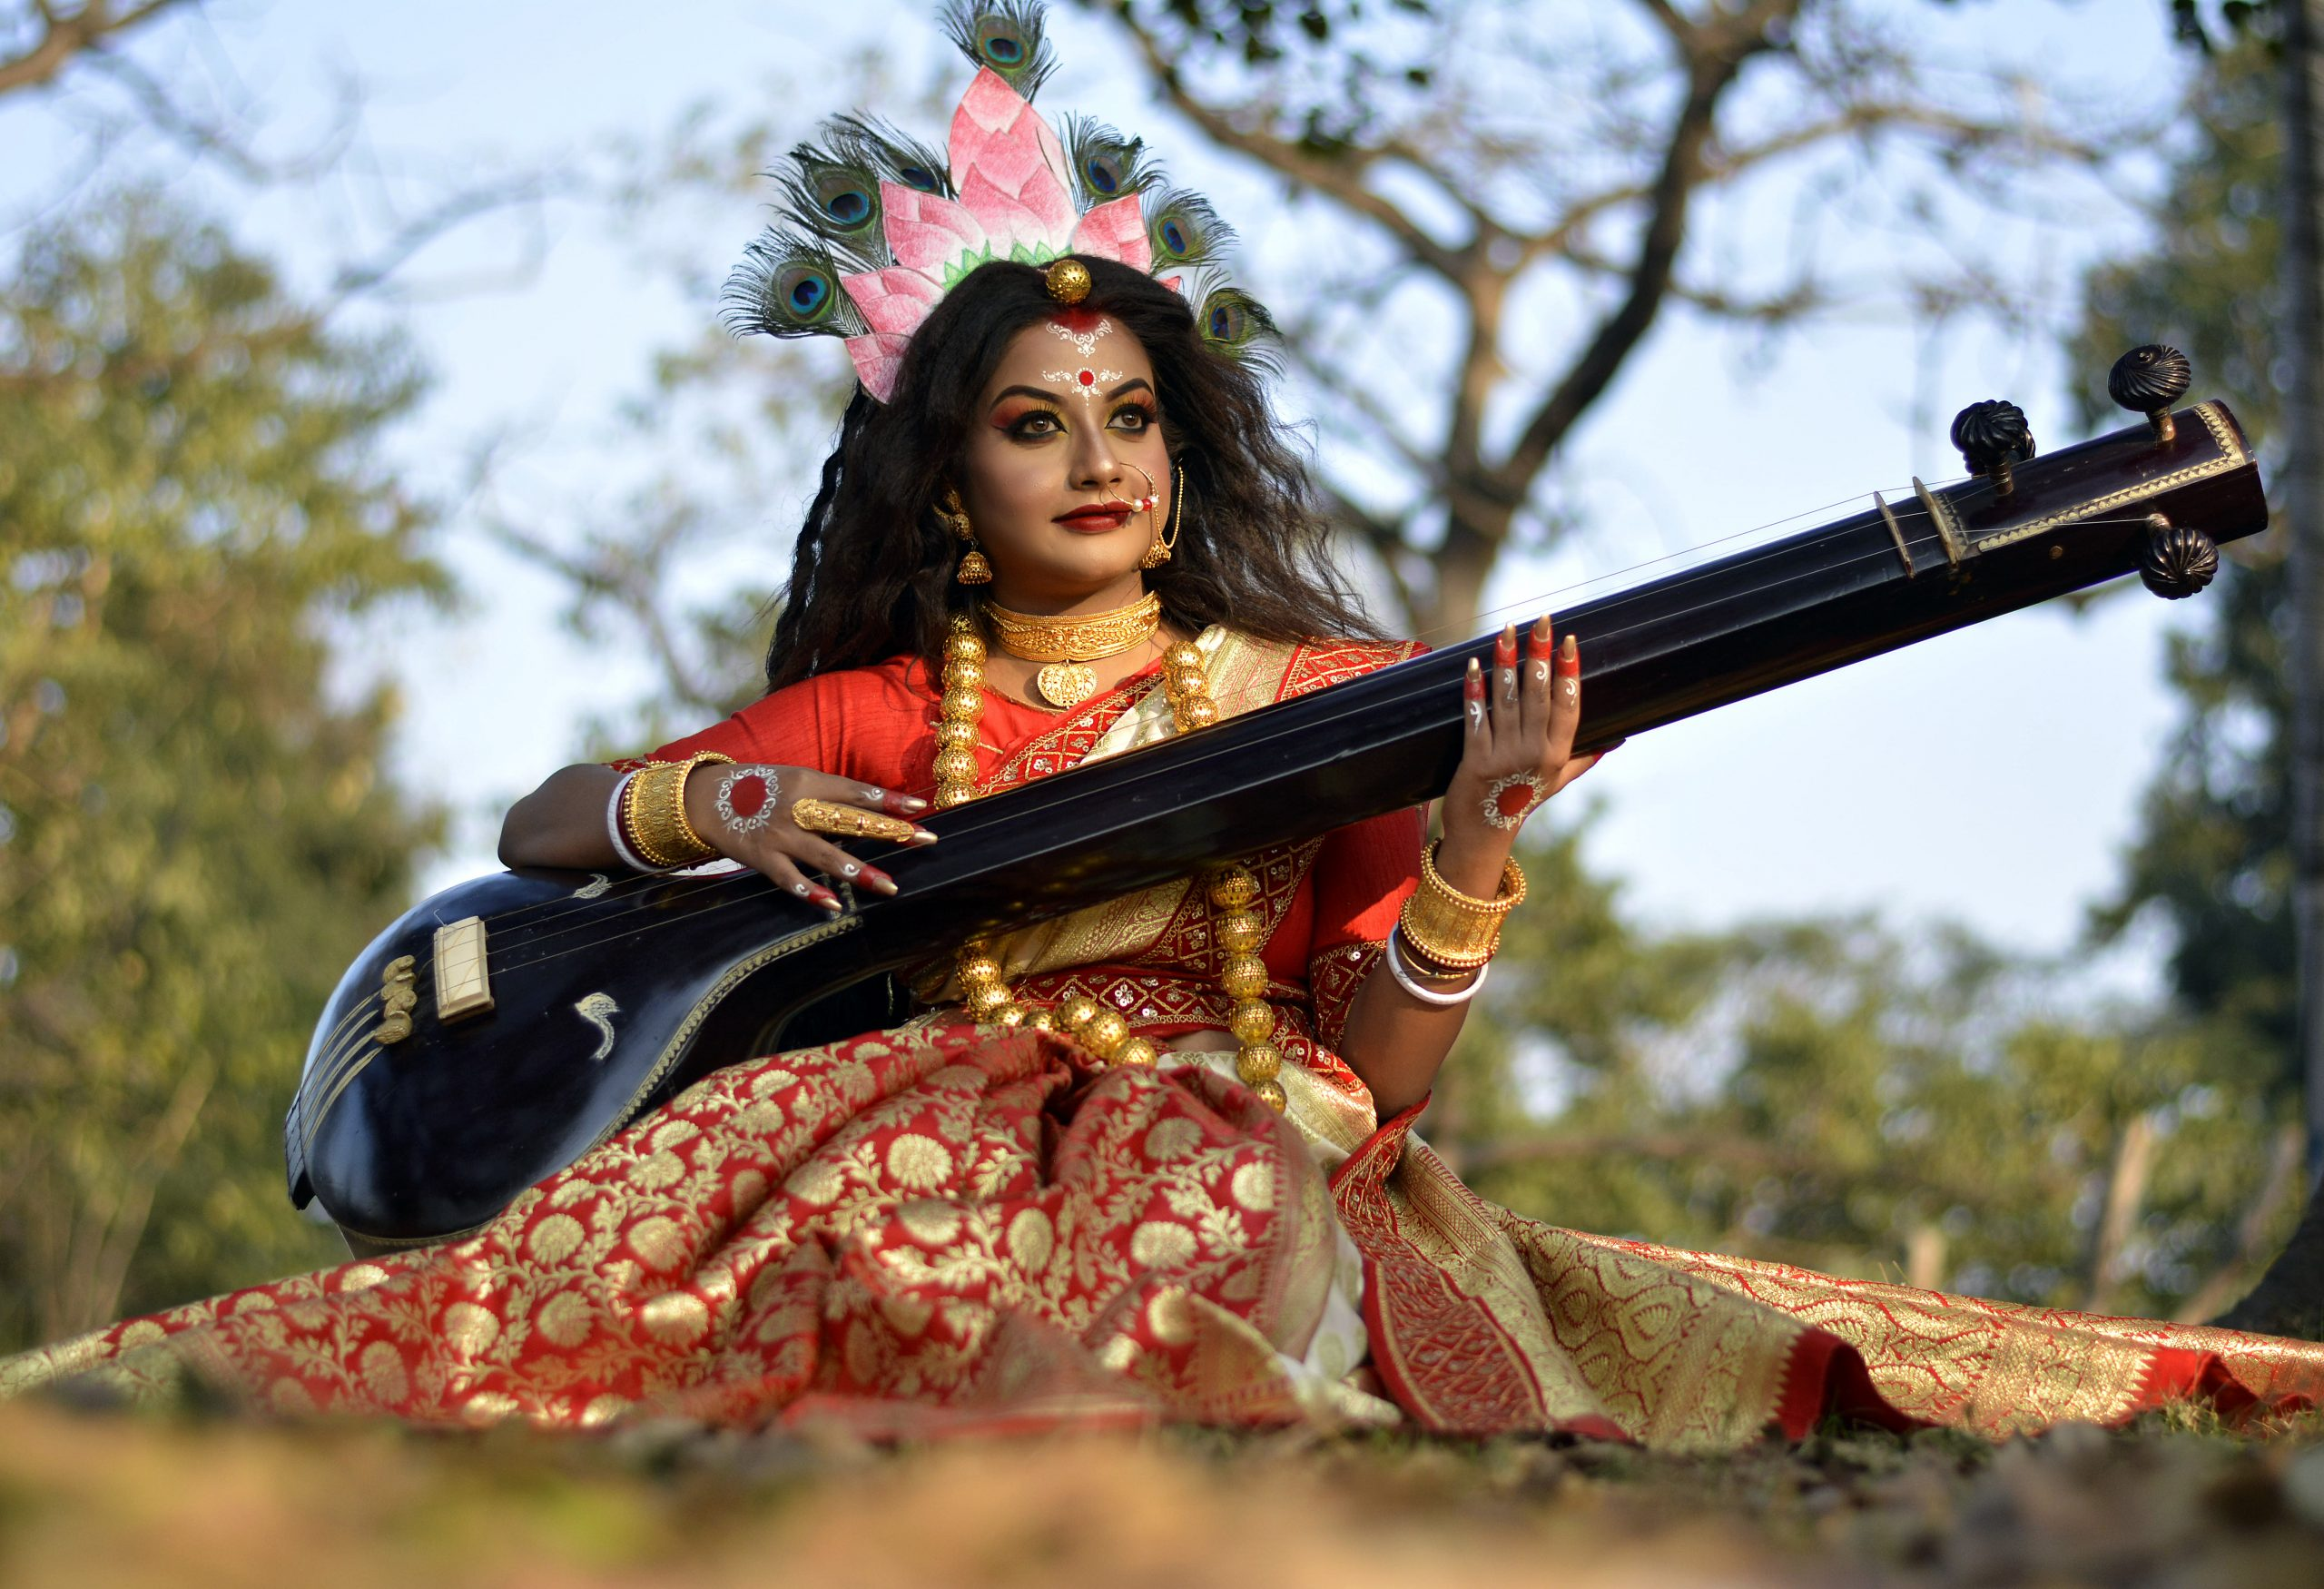 A woman in Hindu goddess makeover